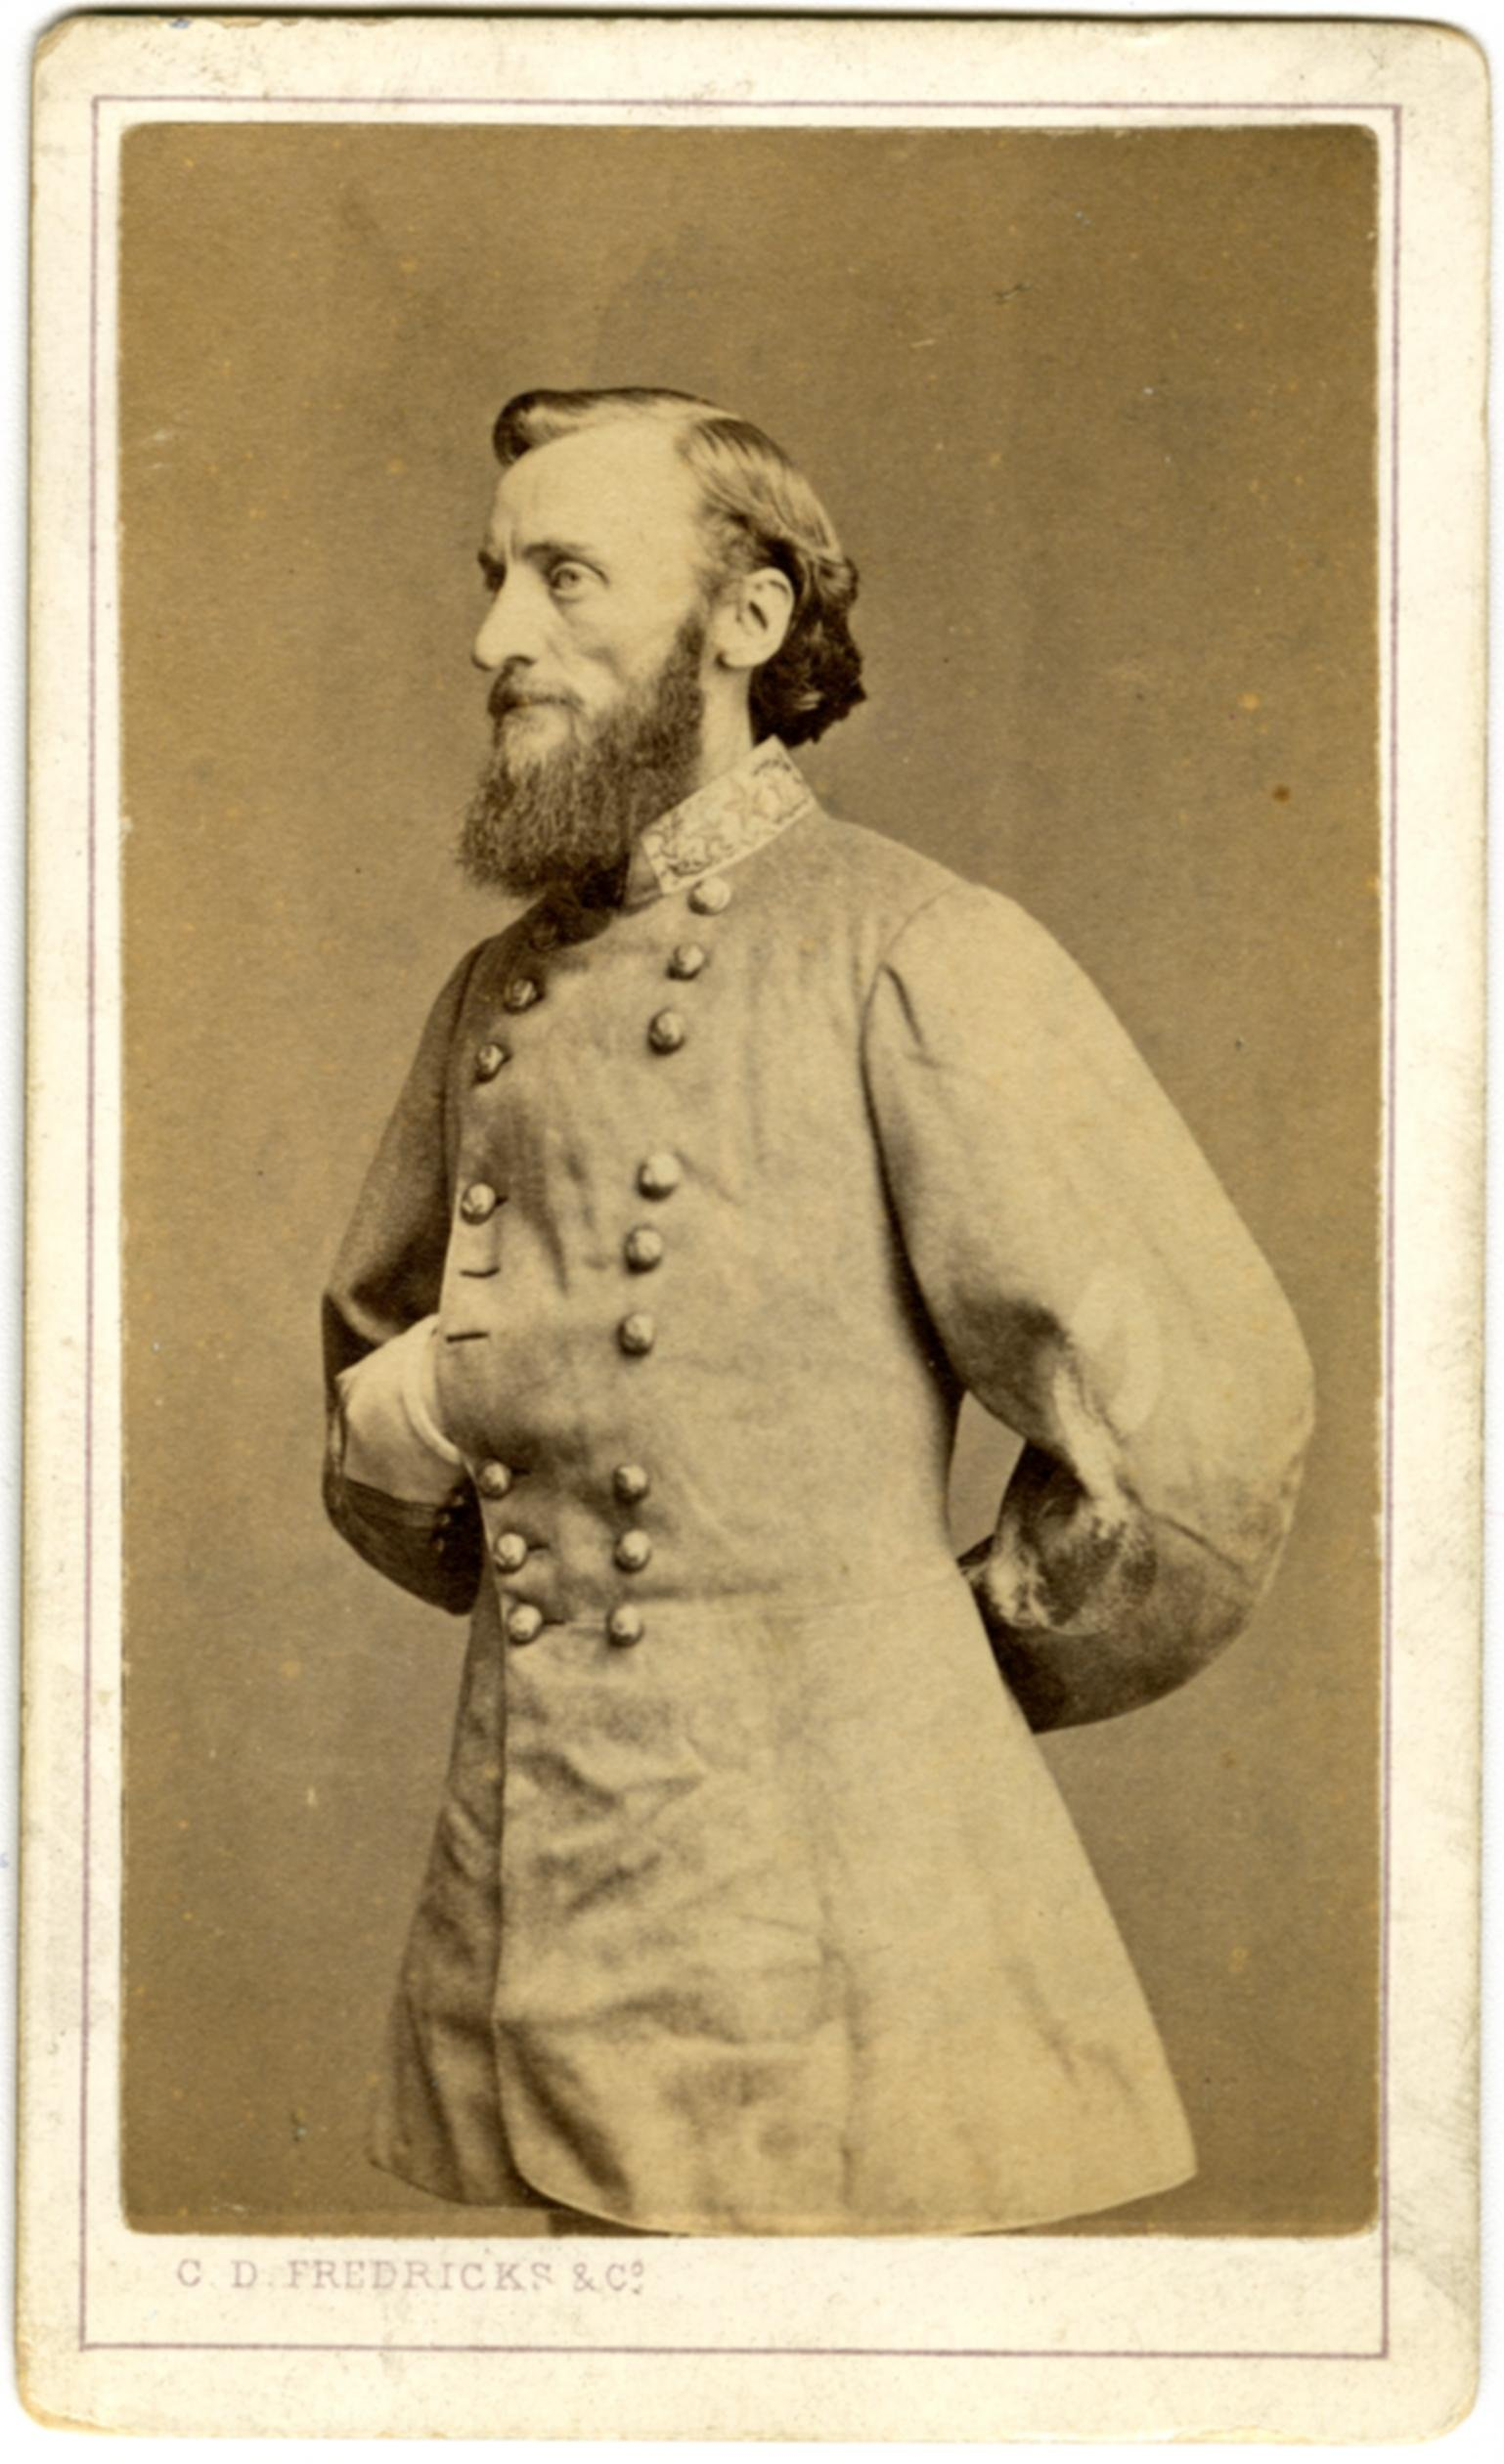 Gen. John S. Marmaduke commanded roughly a third of Price's invasion force during the raid. A graduate of West Point, he was captured in one of the final battles of the campaign, at Mine Creek, Kansas.